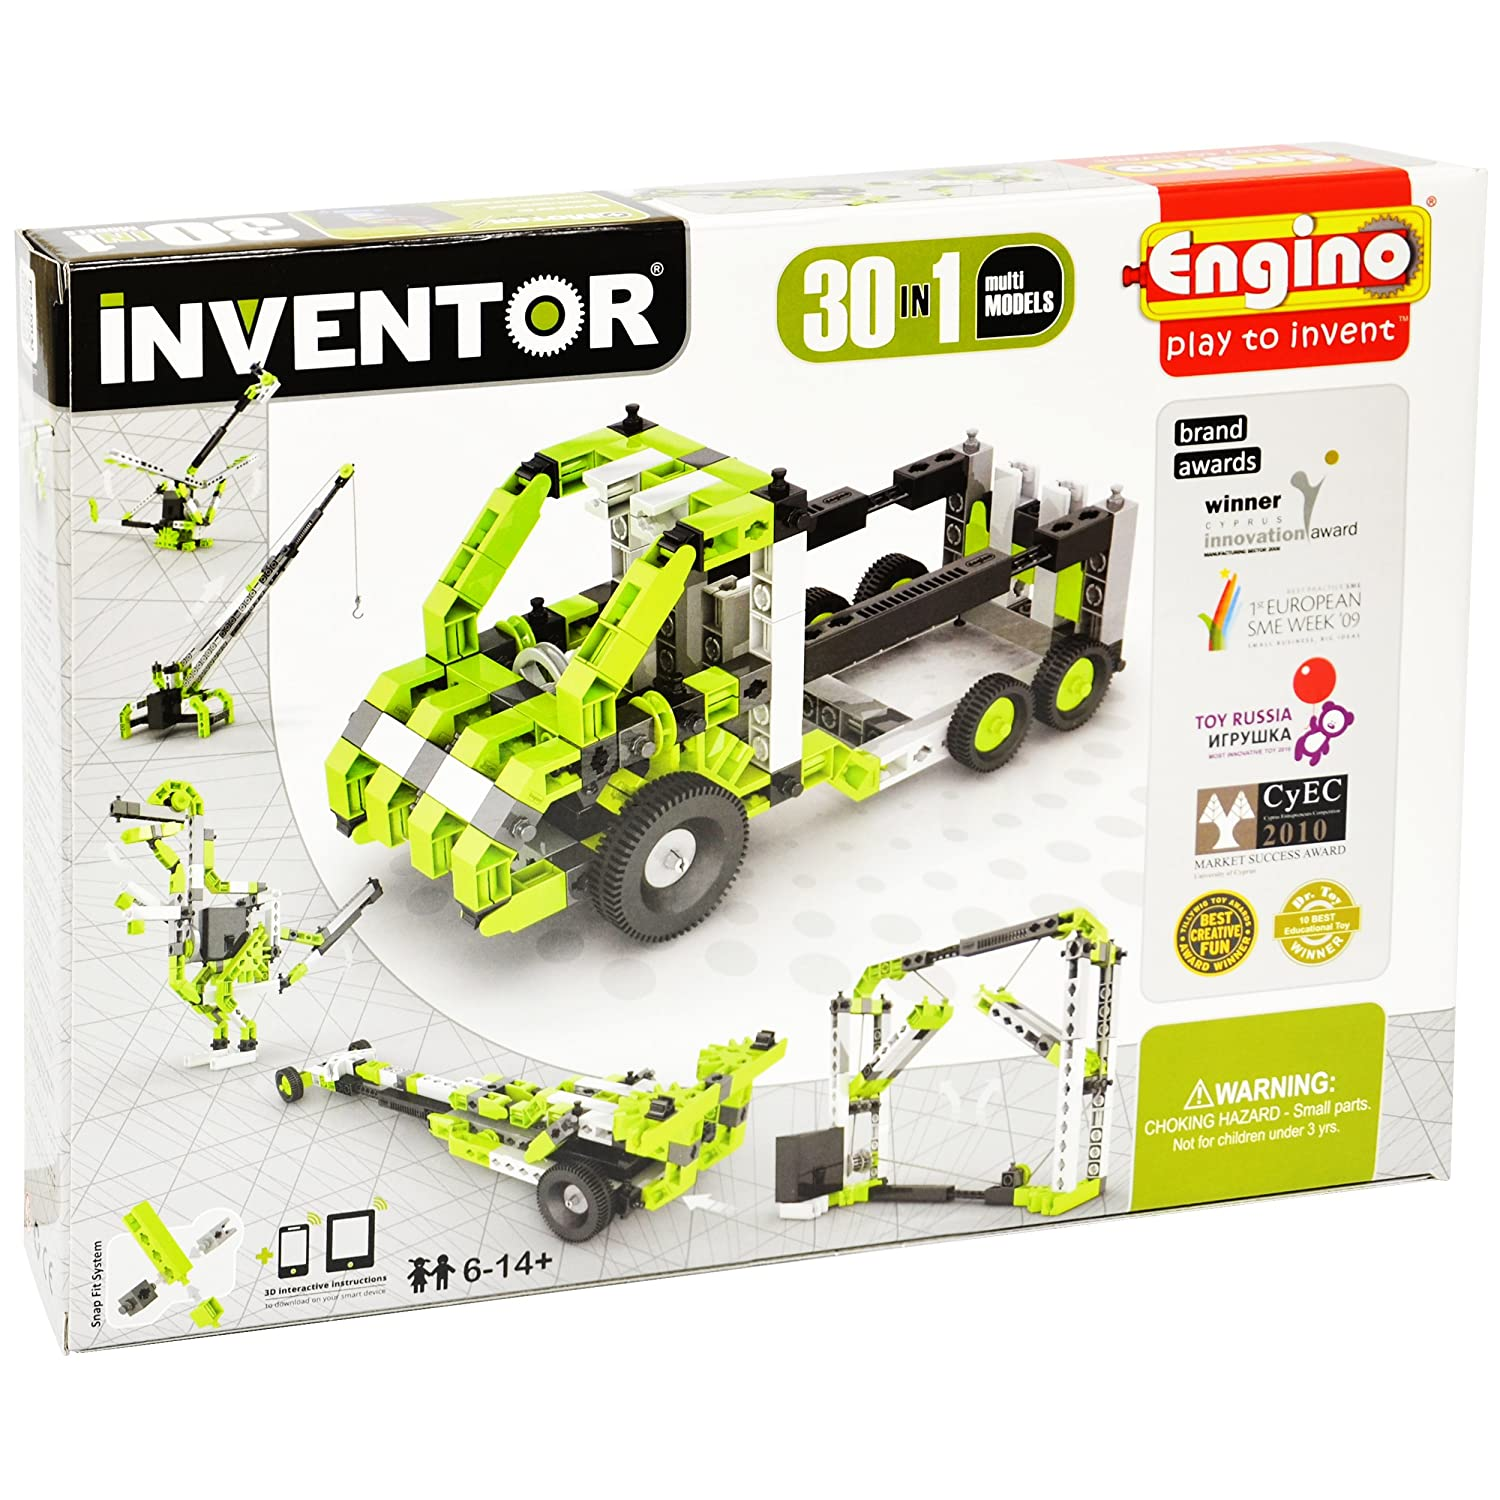 STEM Construction Kit Drawbridge Helicopter Engino Inventor 30-IN-ONE  BUILD 30 Motorized Models Assemble Drag Racer Elevator and so much more T-Rex Truck